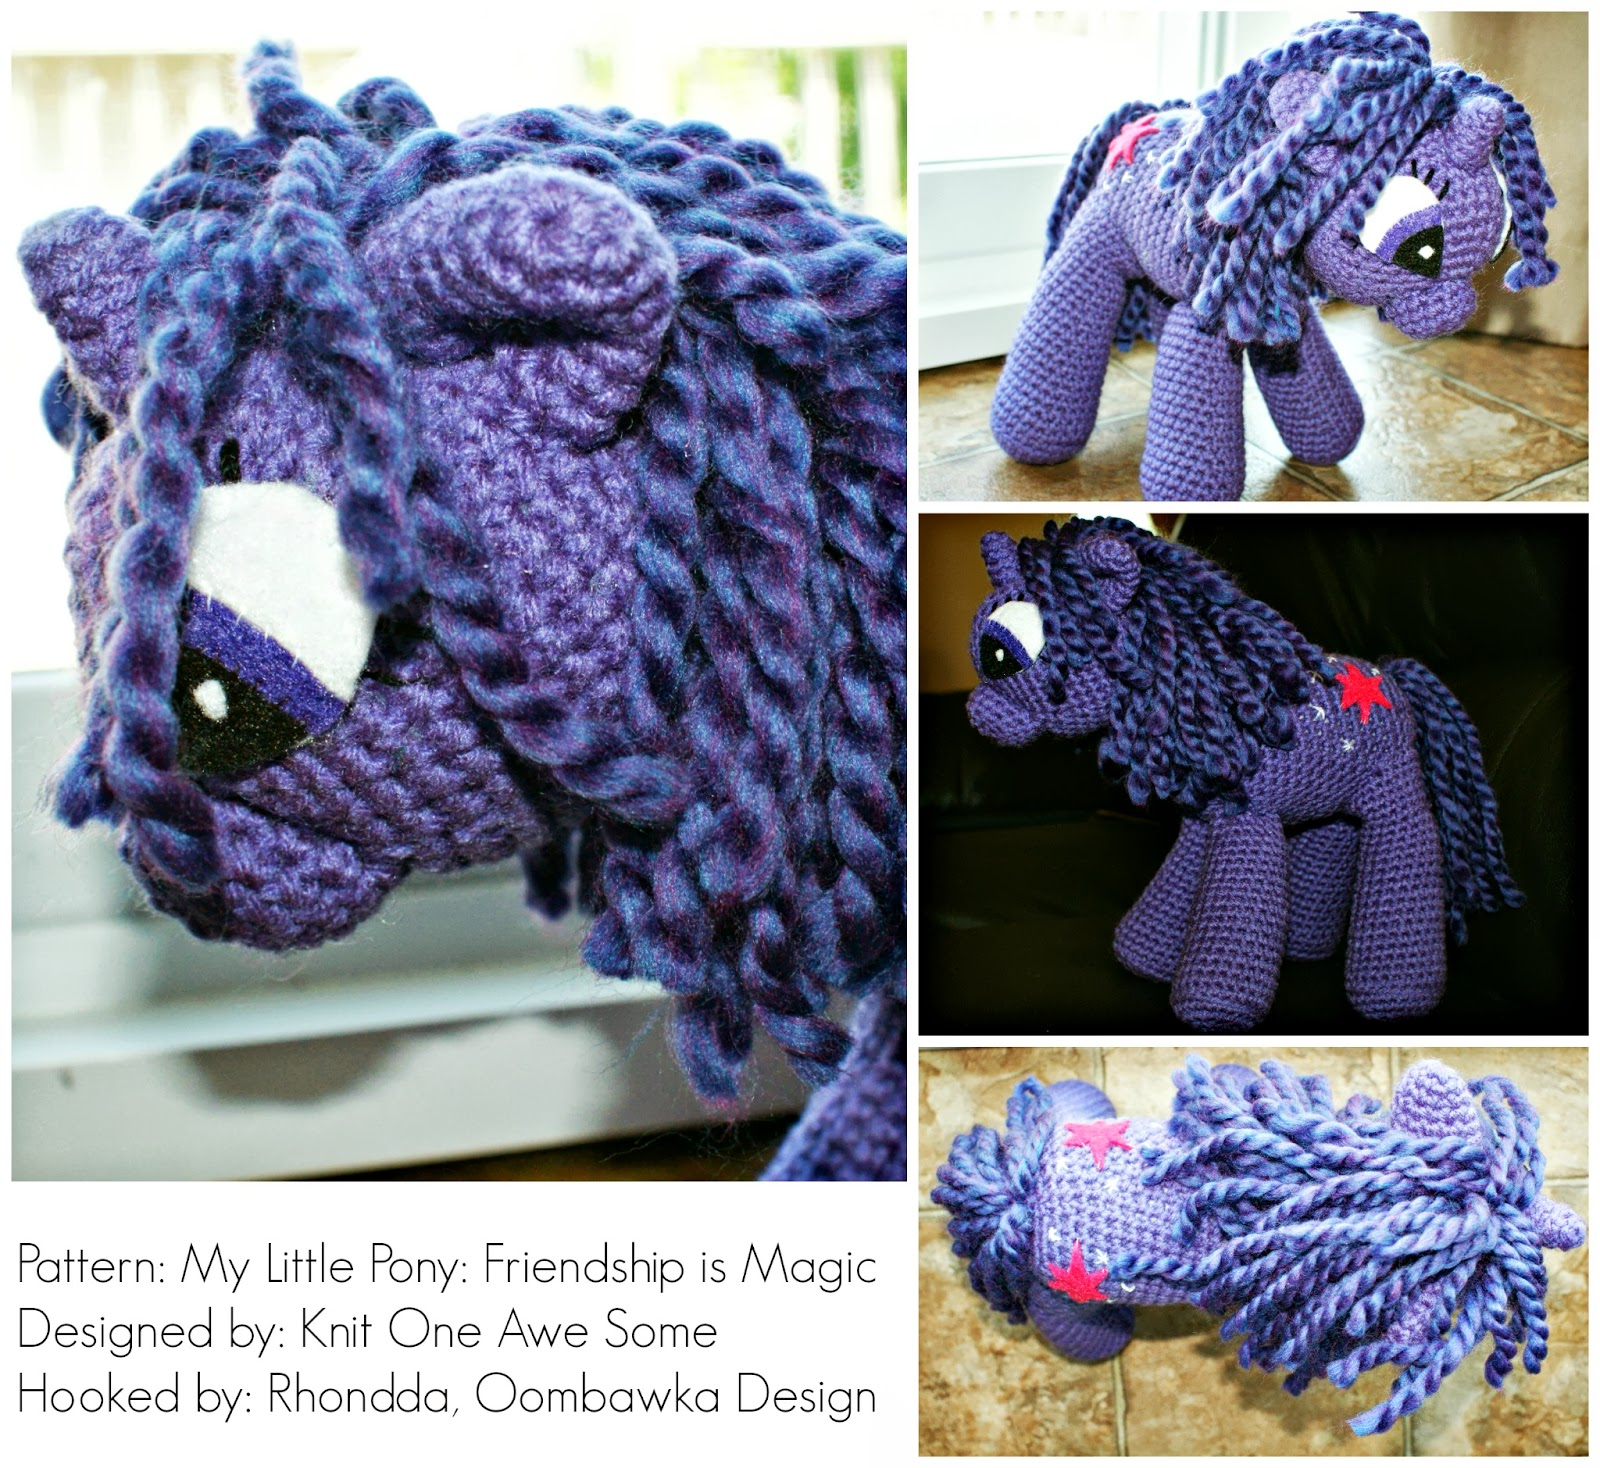 Wee My Little Pony Inspired Amigurumi Pattern ⋆ Crochet Kingdom | 1468x1600